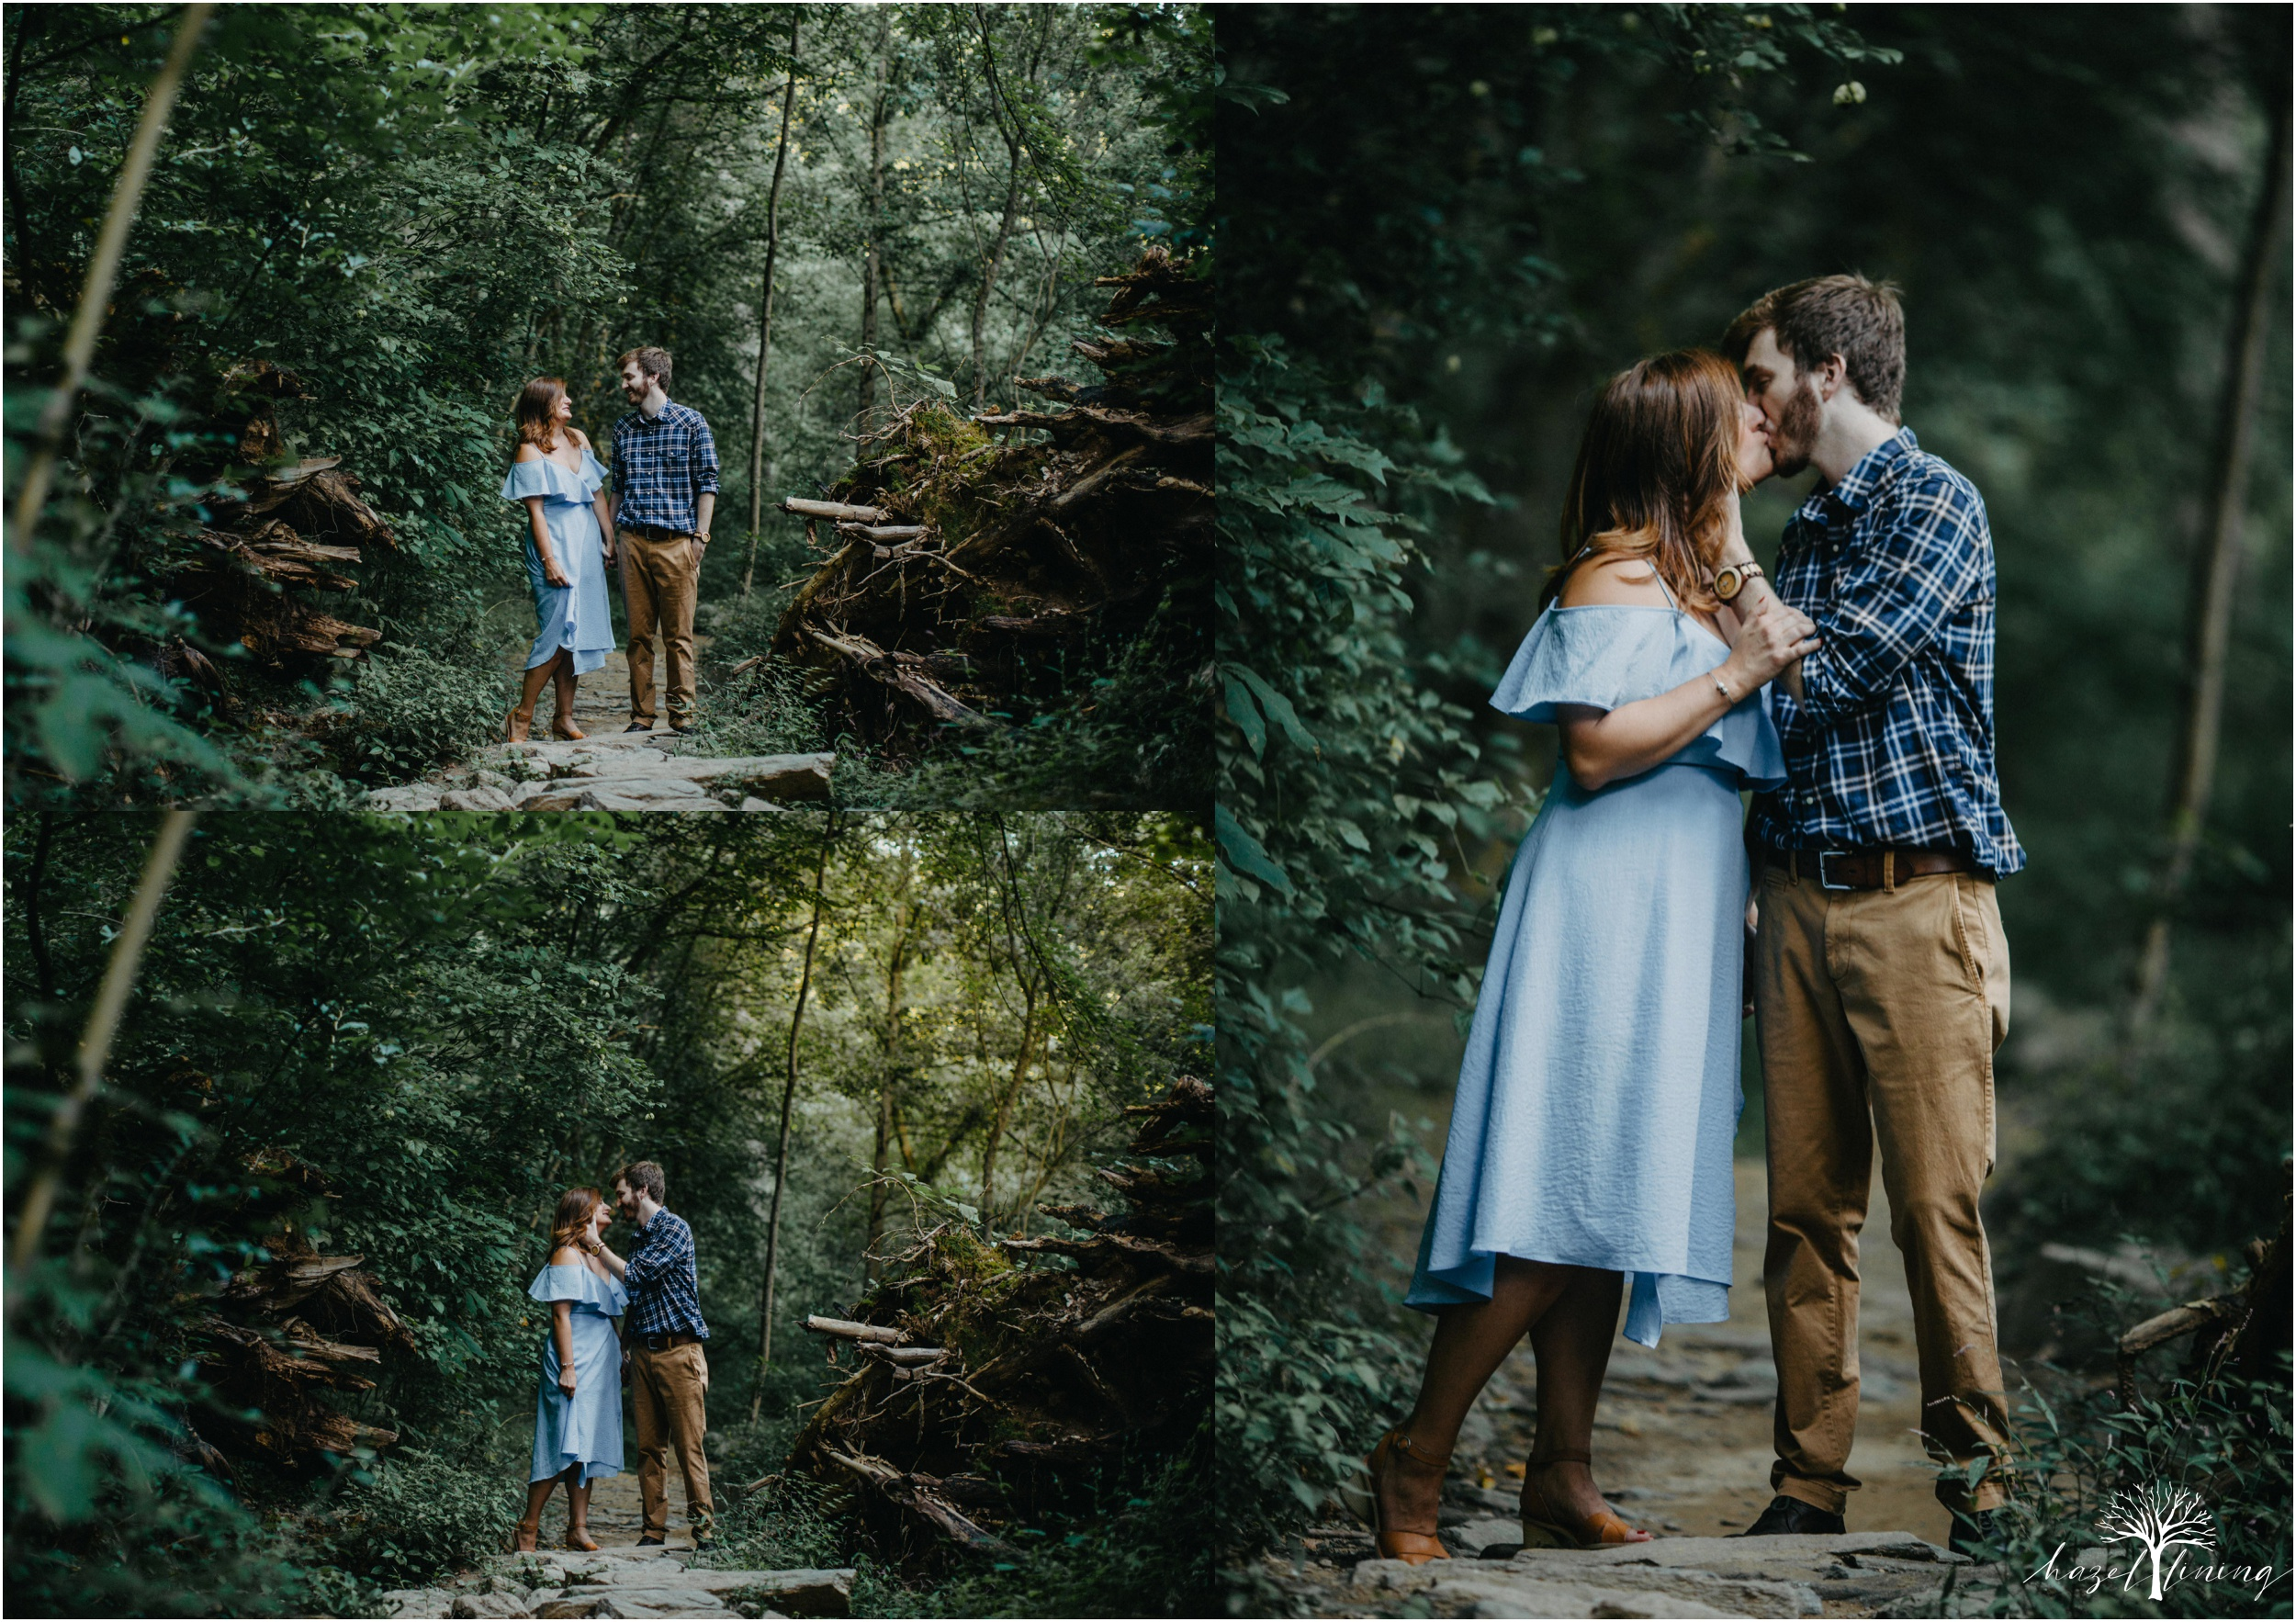 paige-kochey-chris-graham-valley-green-wissahickon-park-philadelphia-summer-engagement-session-hazel-lining-photography-destination-elopement-wedding-engagement-photography_0035.jpg